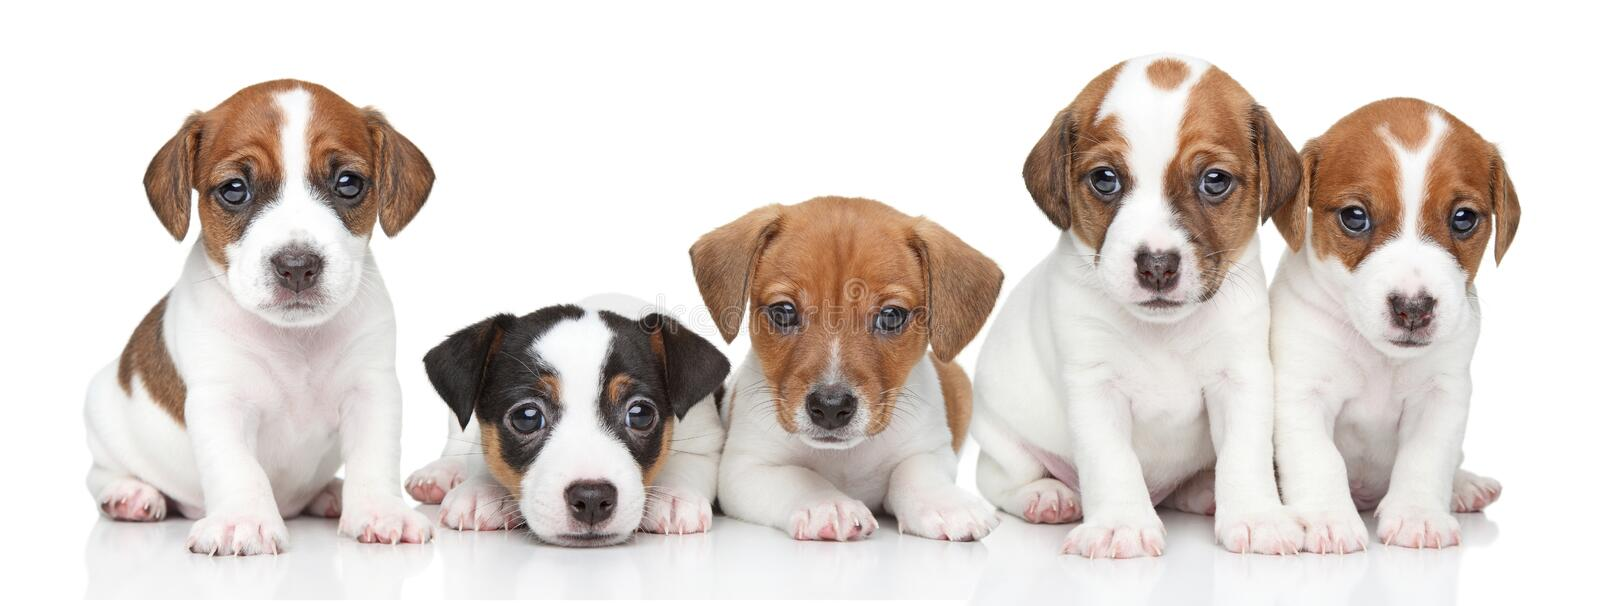 Jack Russel terrier puppies. Group portrait royalty free stock photos